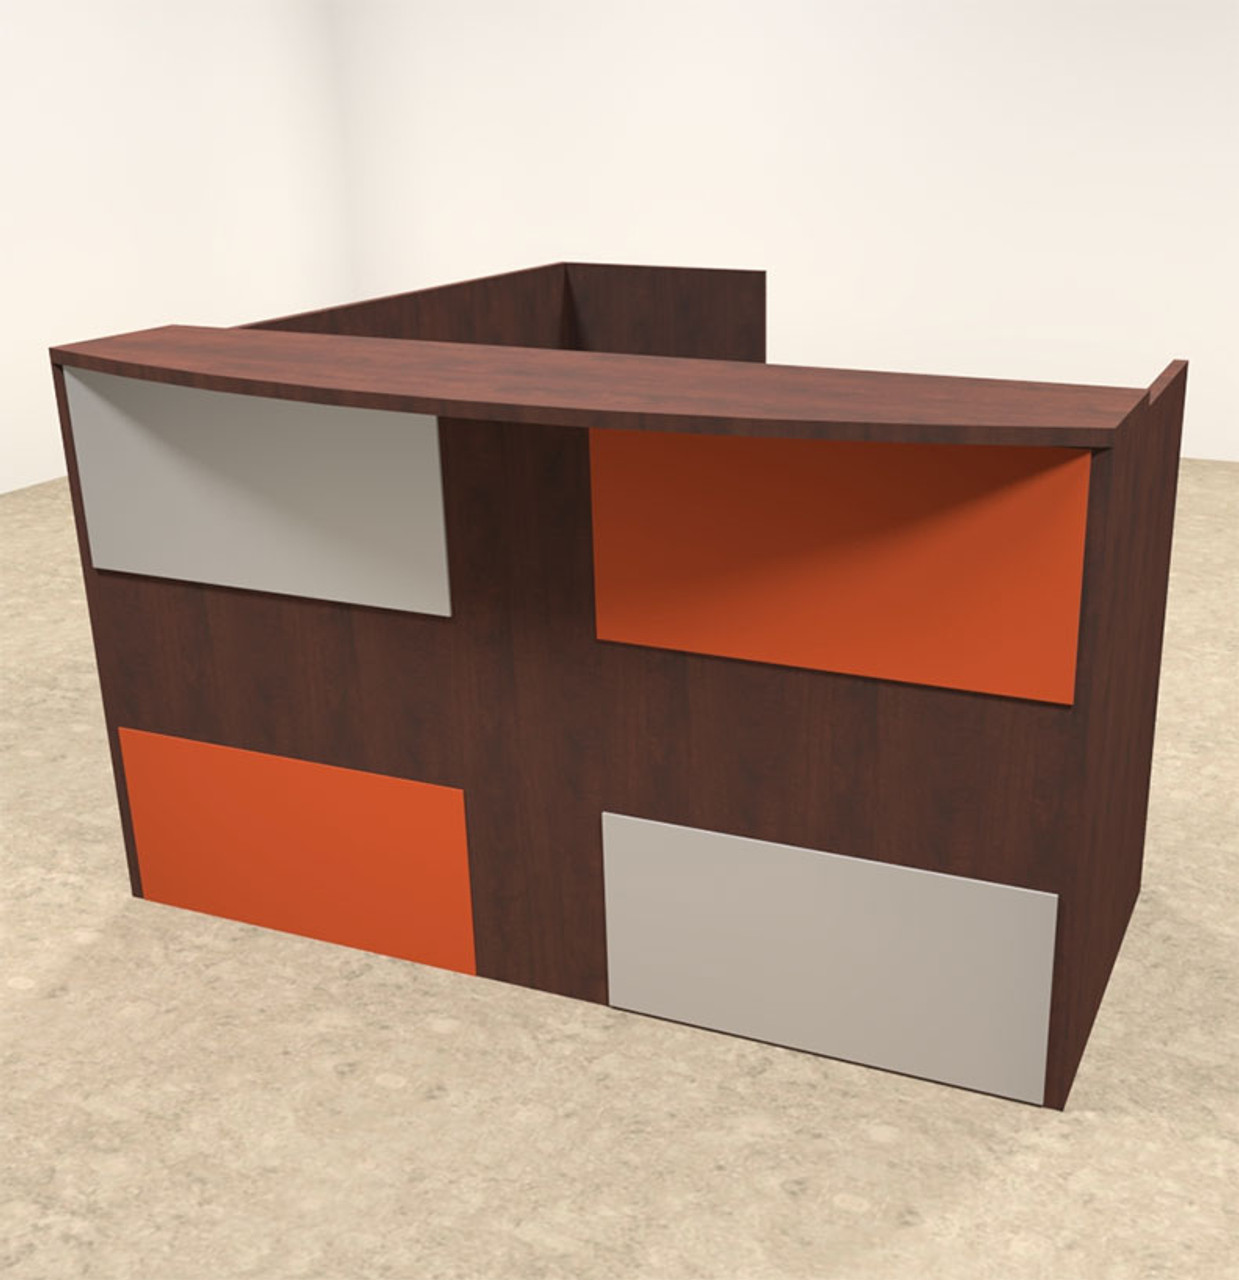 3pc L Shaped Modern Acrylic Panel Office Reception Desk, #OT-SUL-RM46